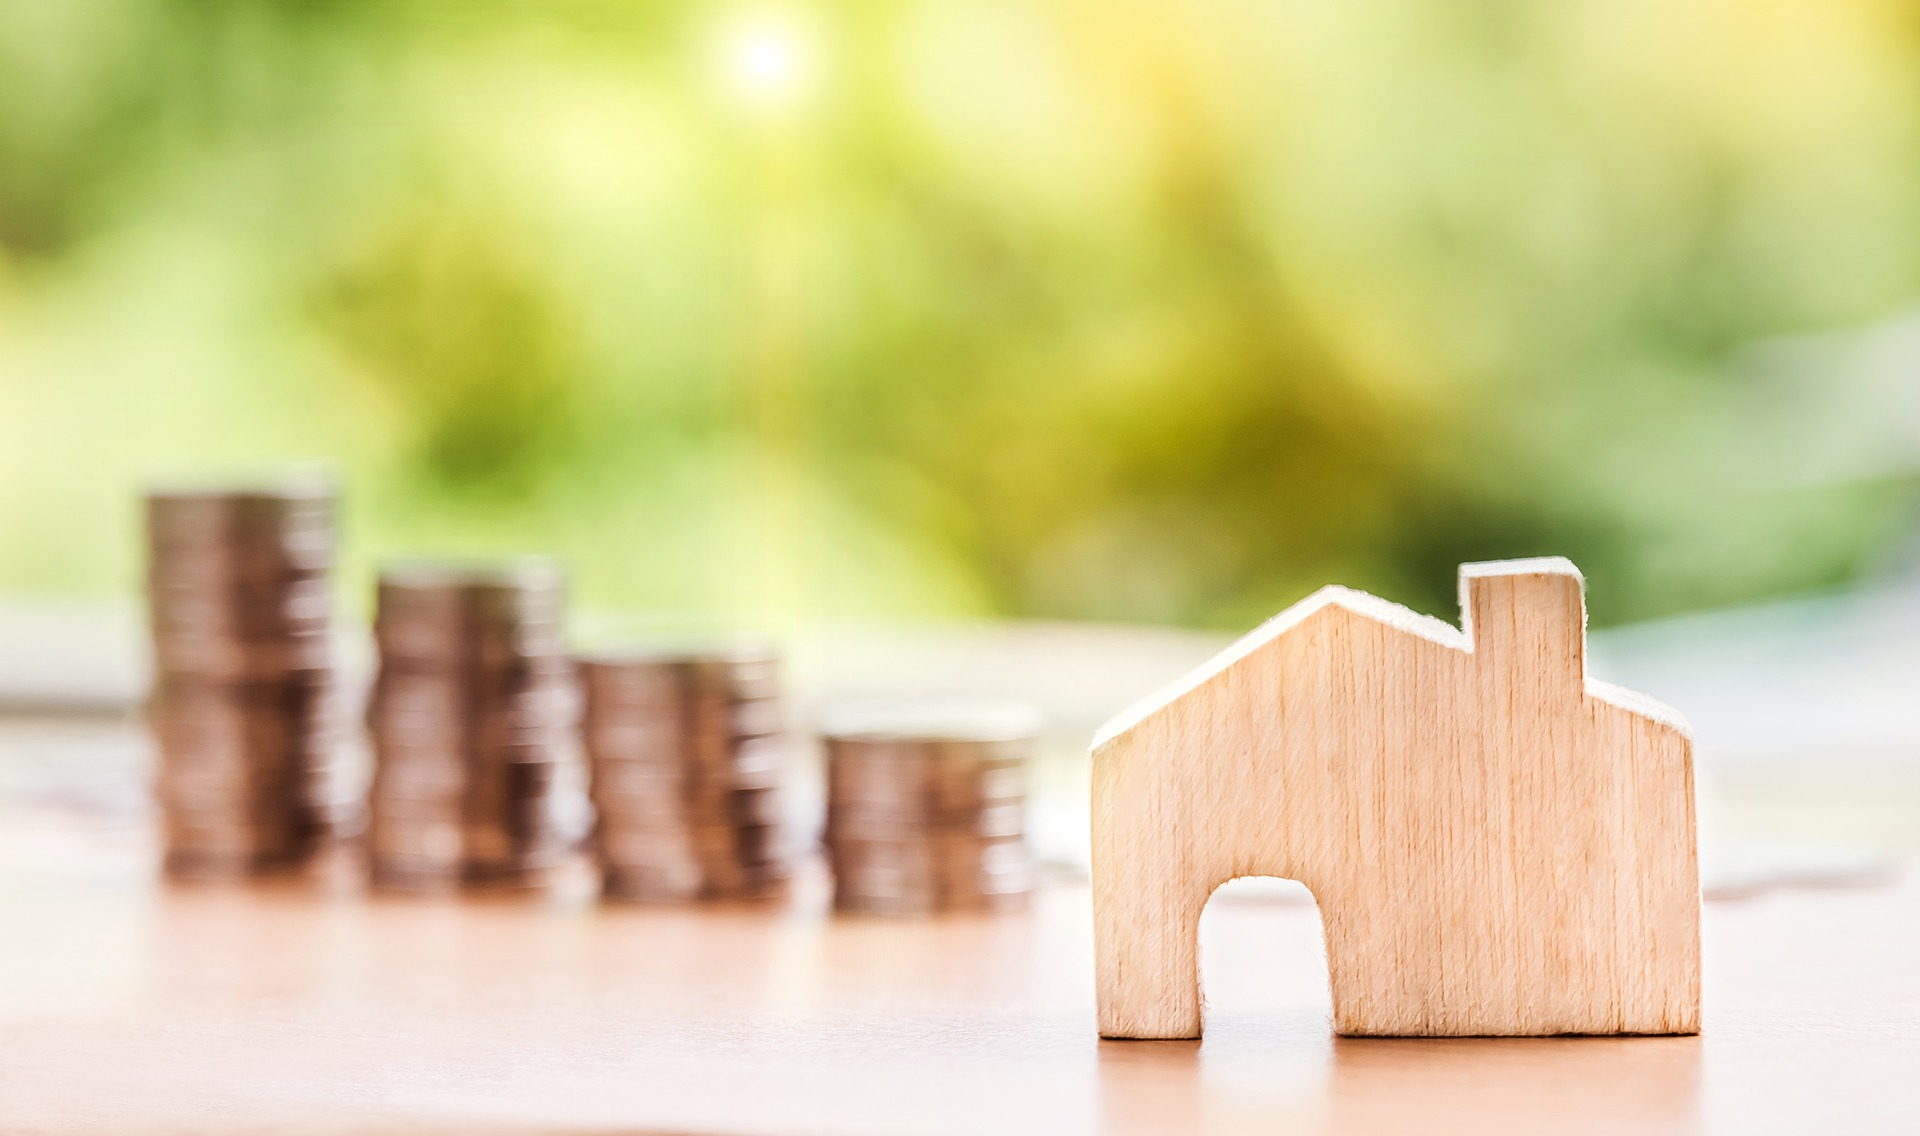 Czech residential real estate: how to cool a buoyant market?